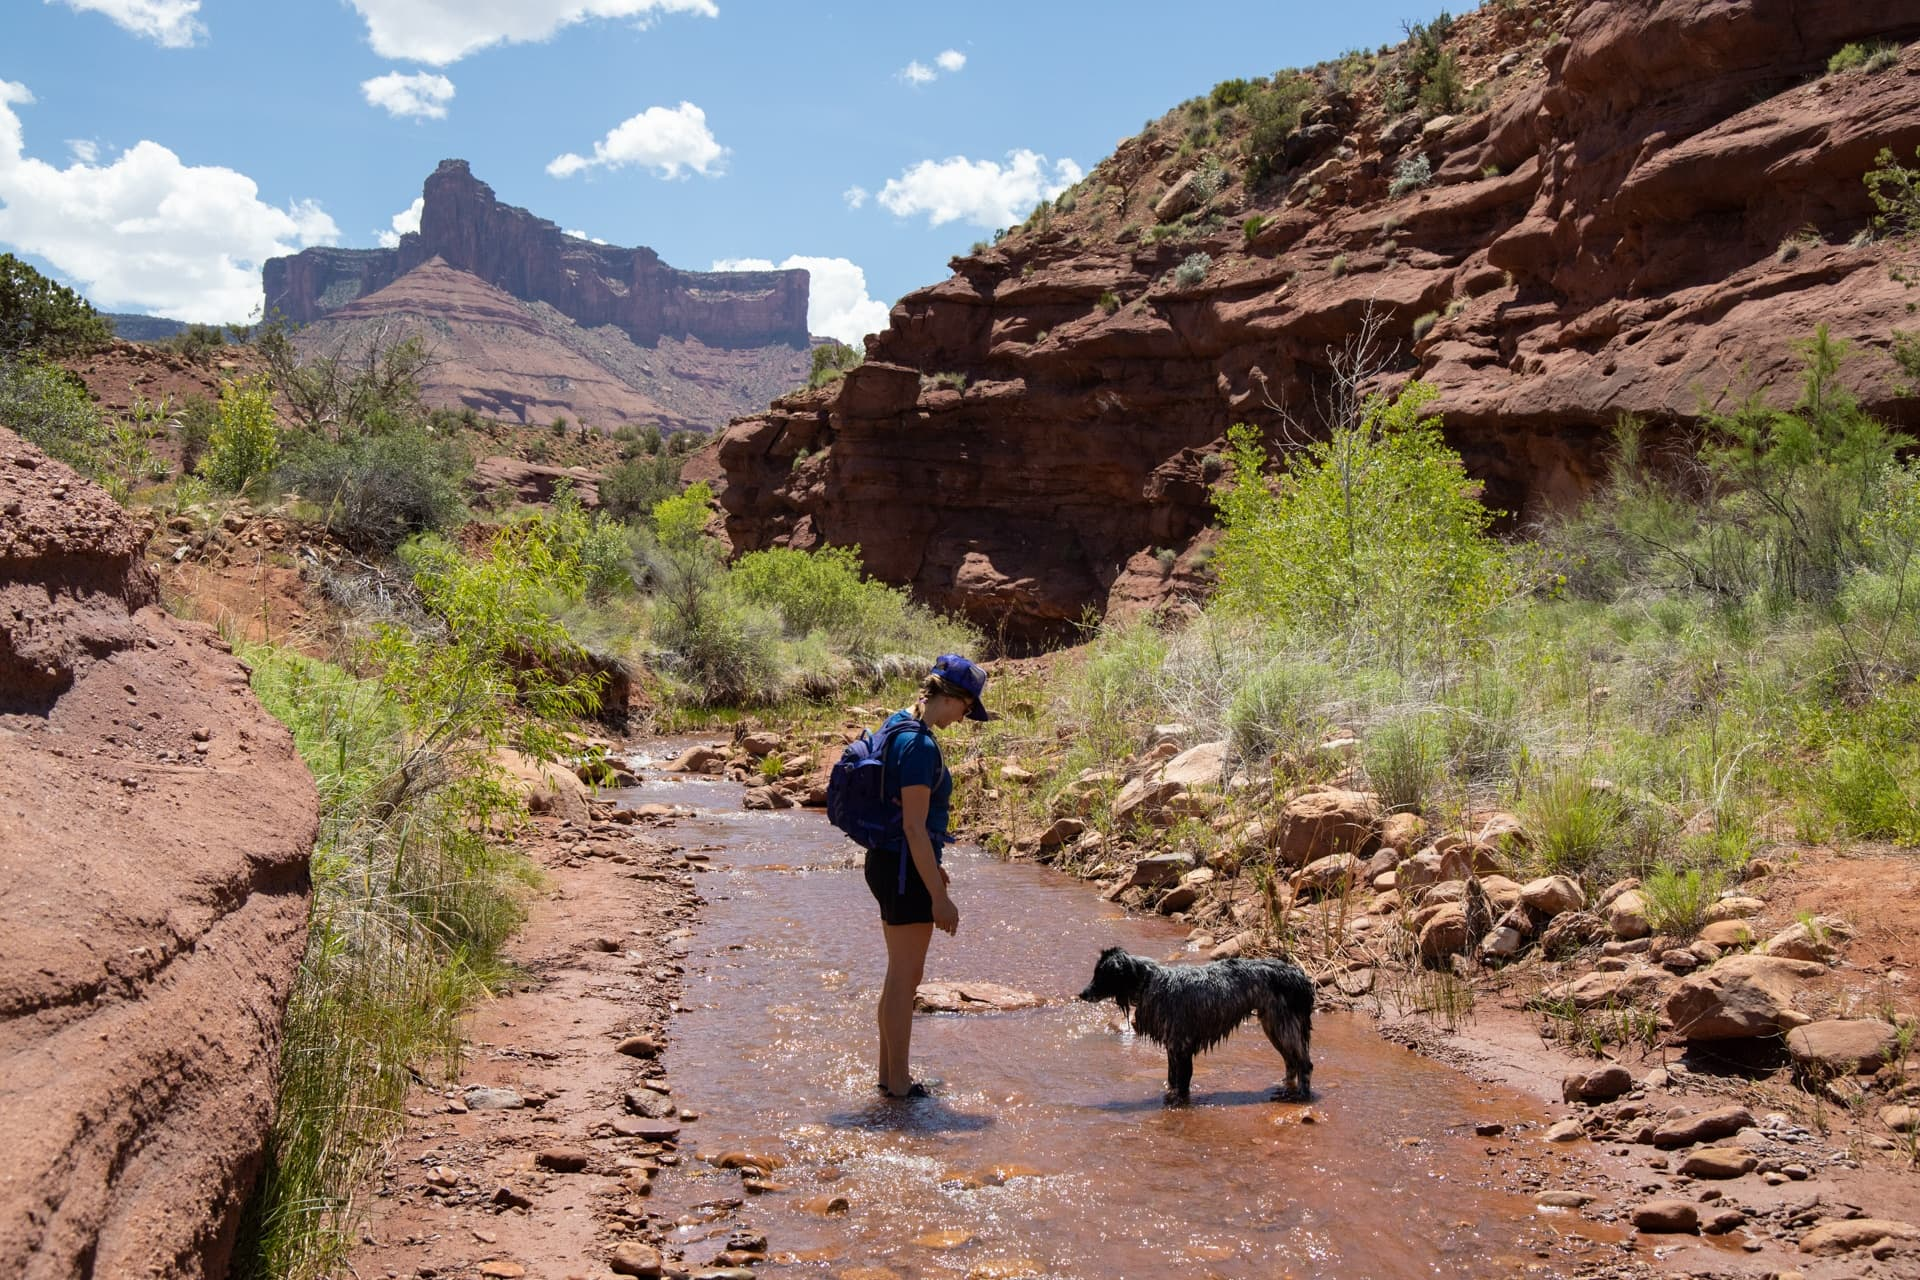 Use these tips to learn how to do Moab like a local and be a responsible visitor while hiking, camping, off-roading and more.